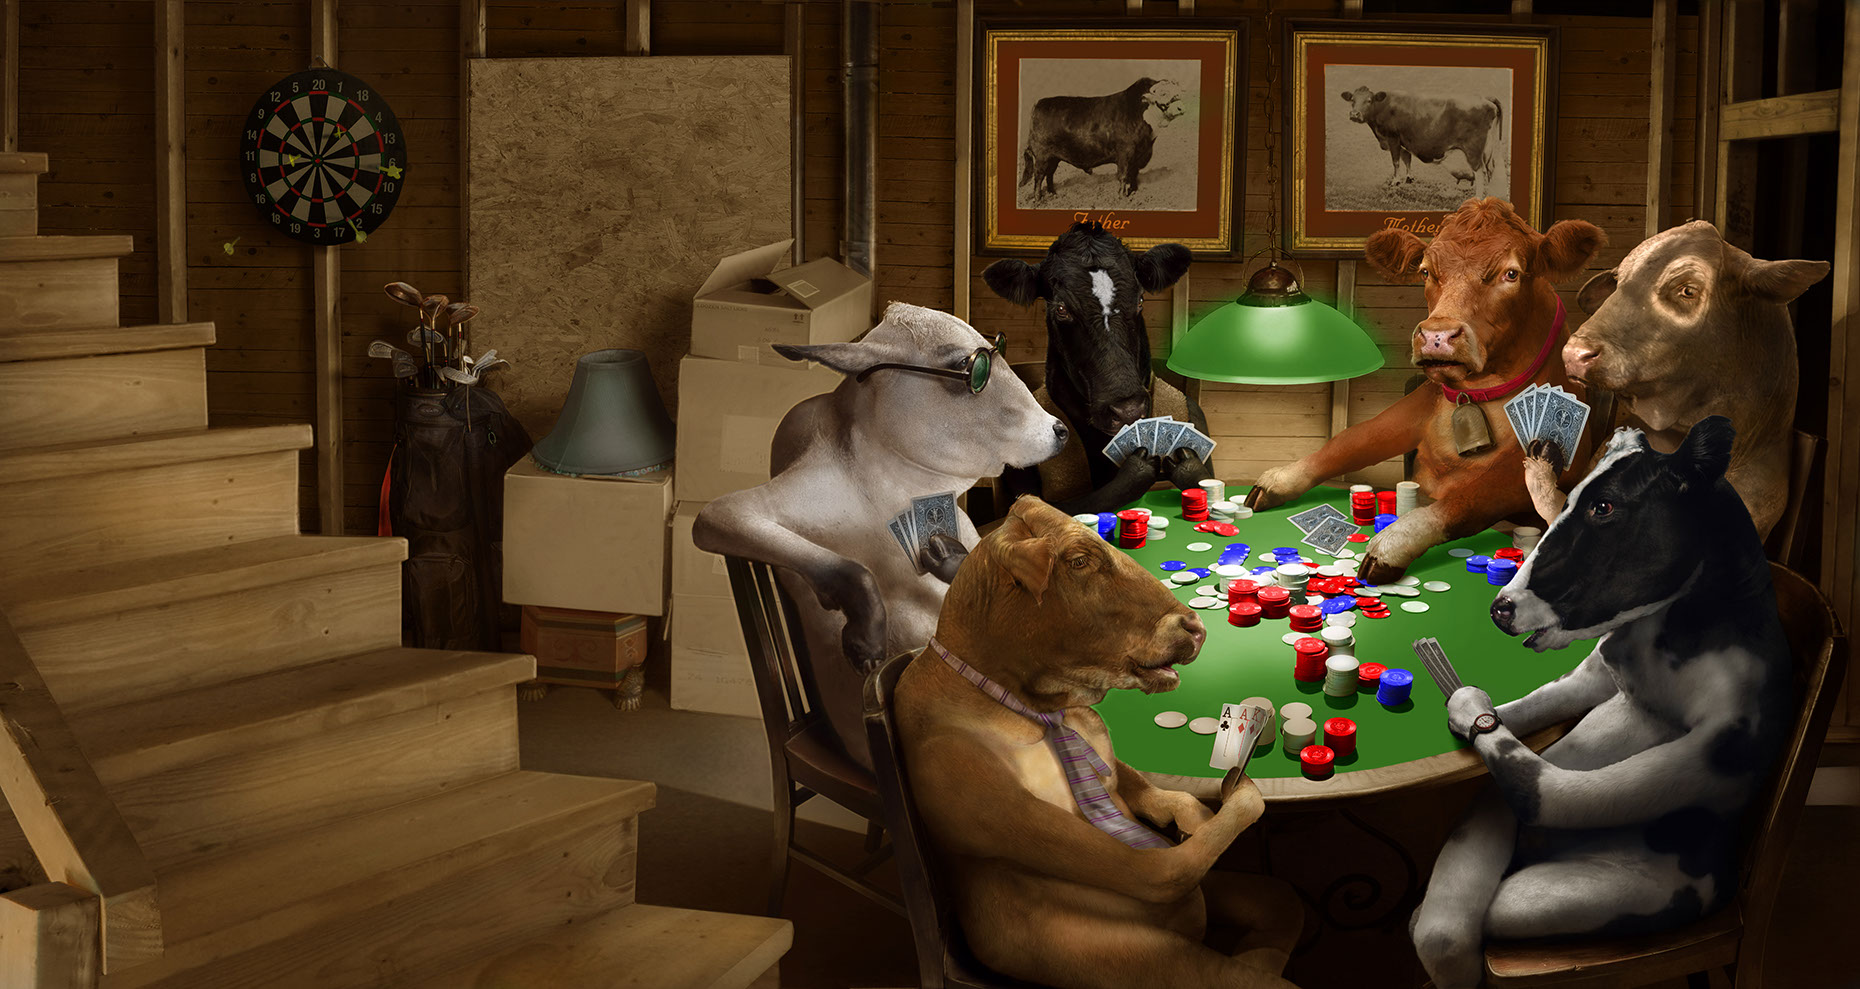 Photo-Imaging_Animals and Nature_Poker playing cows-Stan Watts